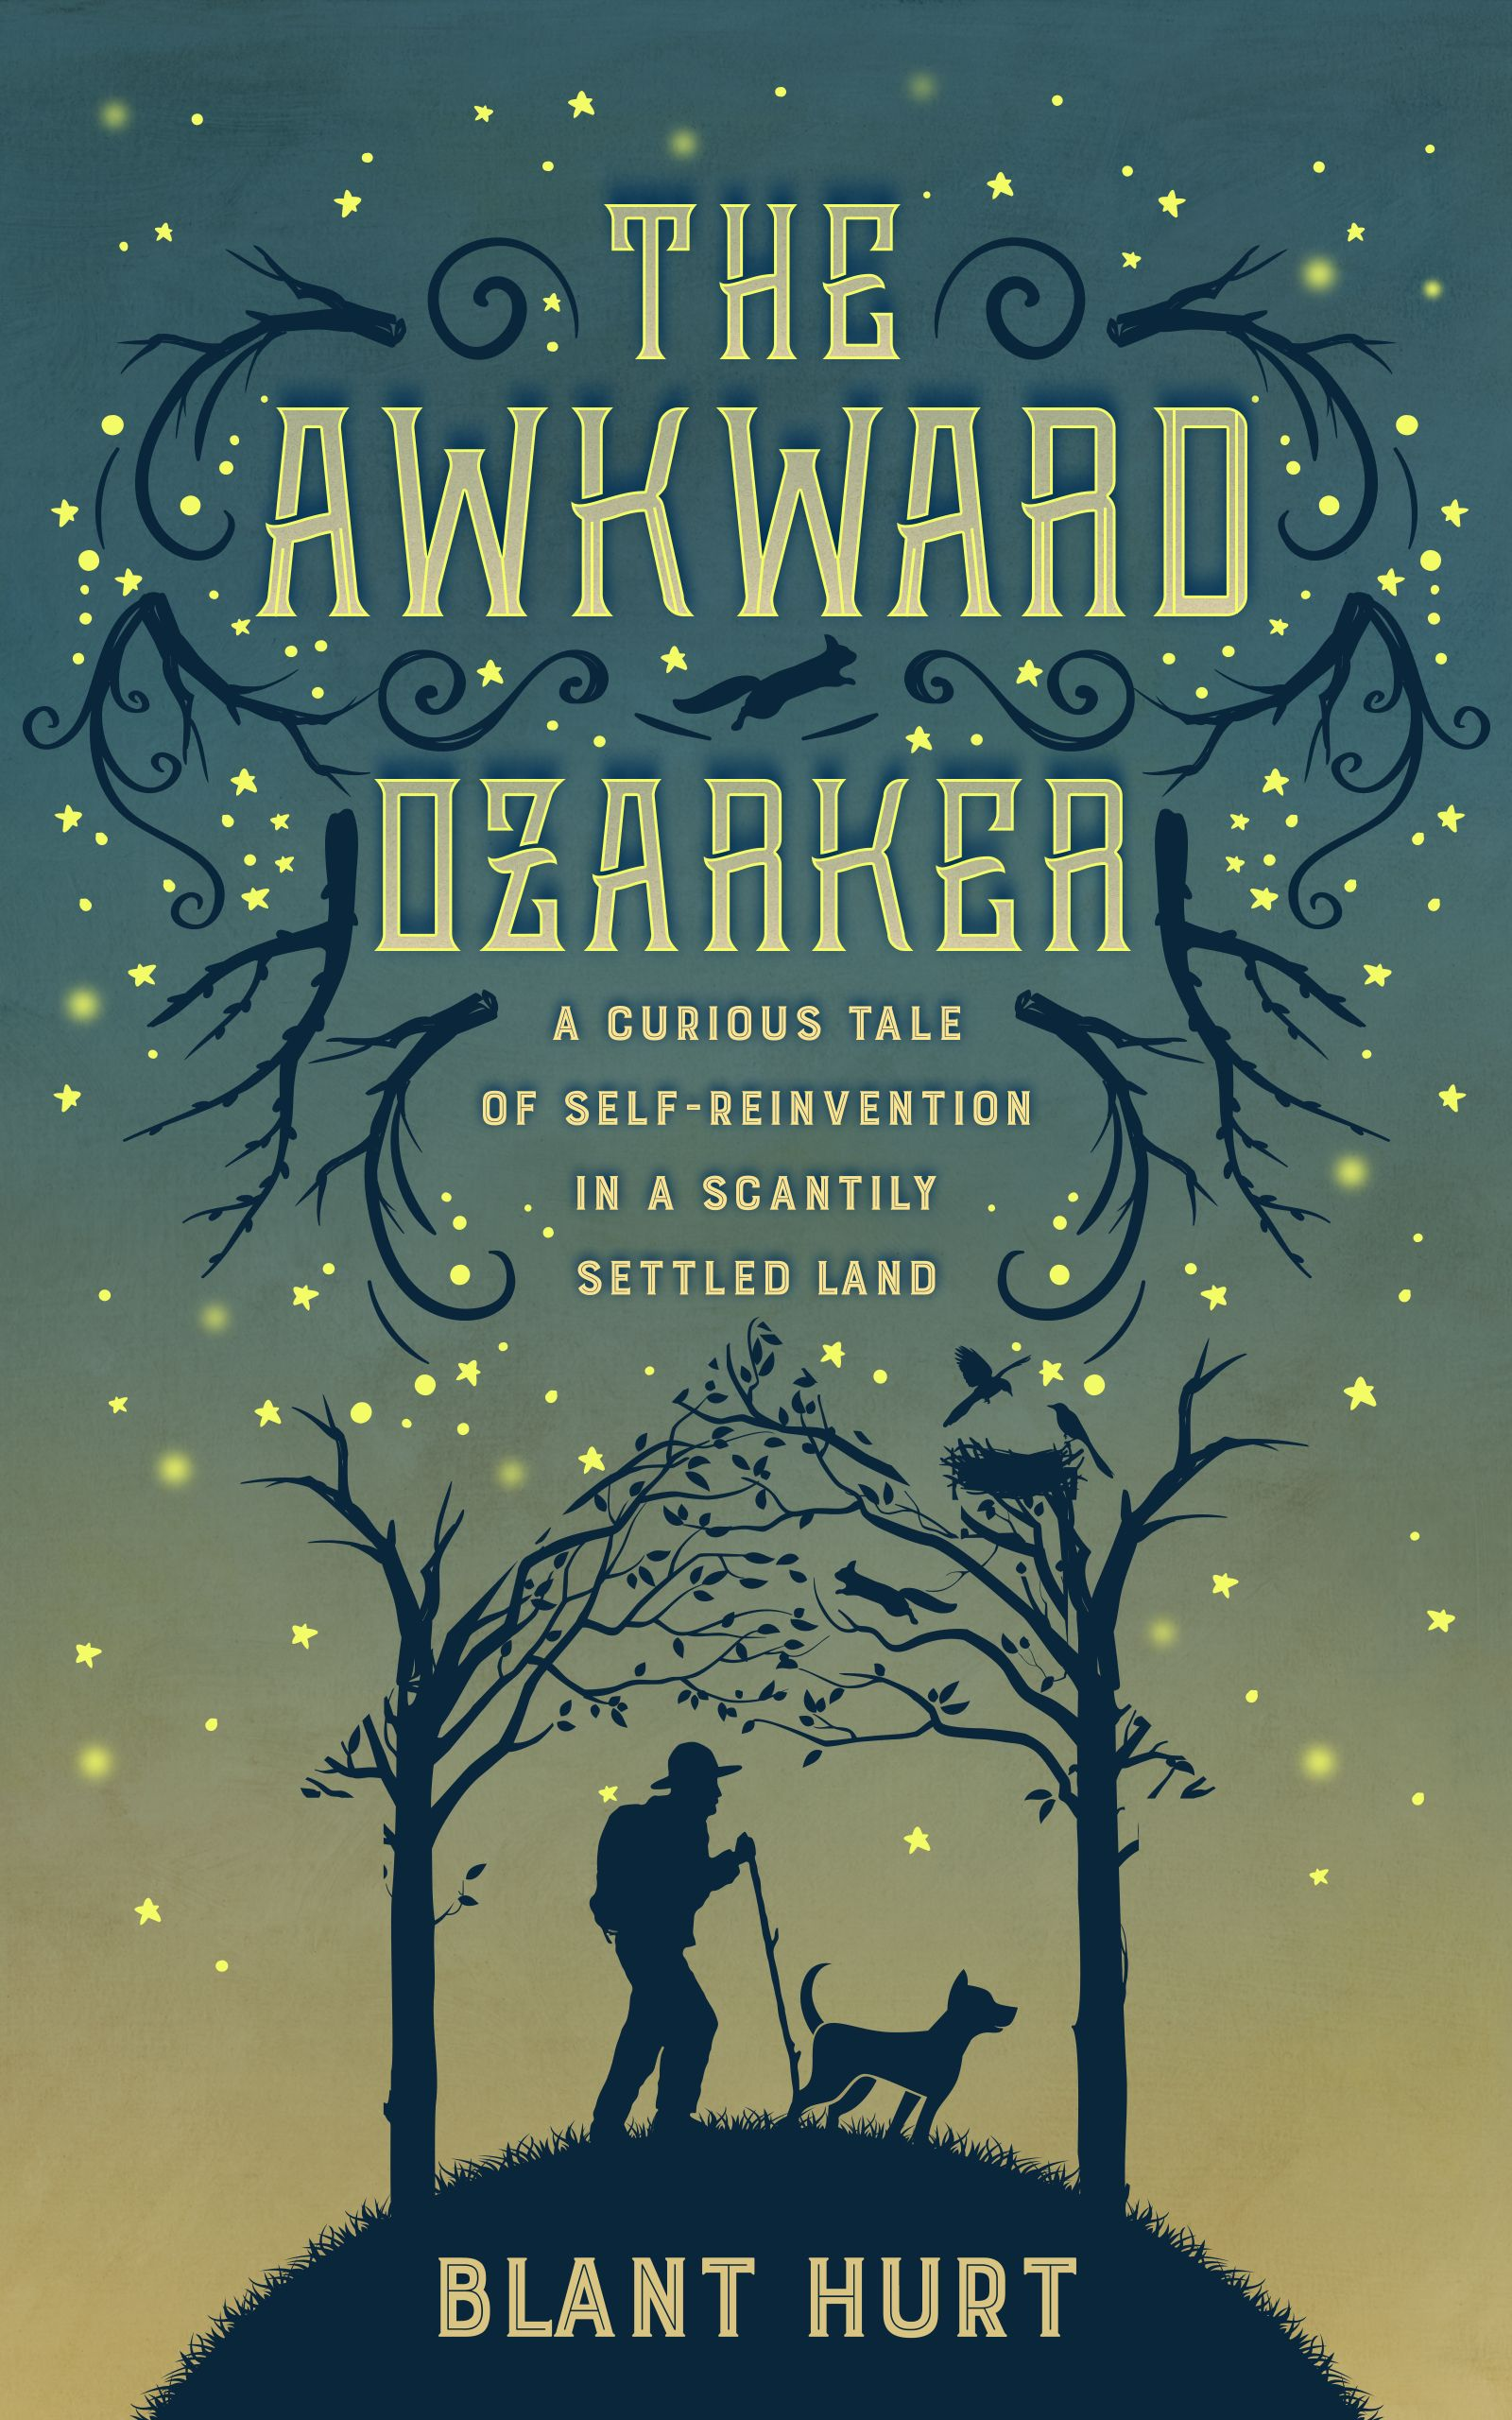 The awkward ozarker by blant hurt book cover design pinterest get an amazing ebook cover design from ebook launch a professional book cover design is the best marketing tool available for attracting new readers fandeluxe Image collections